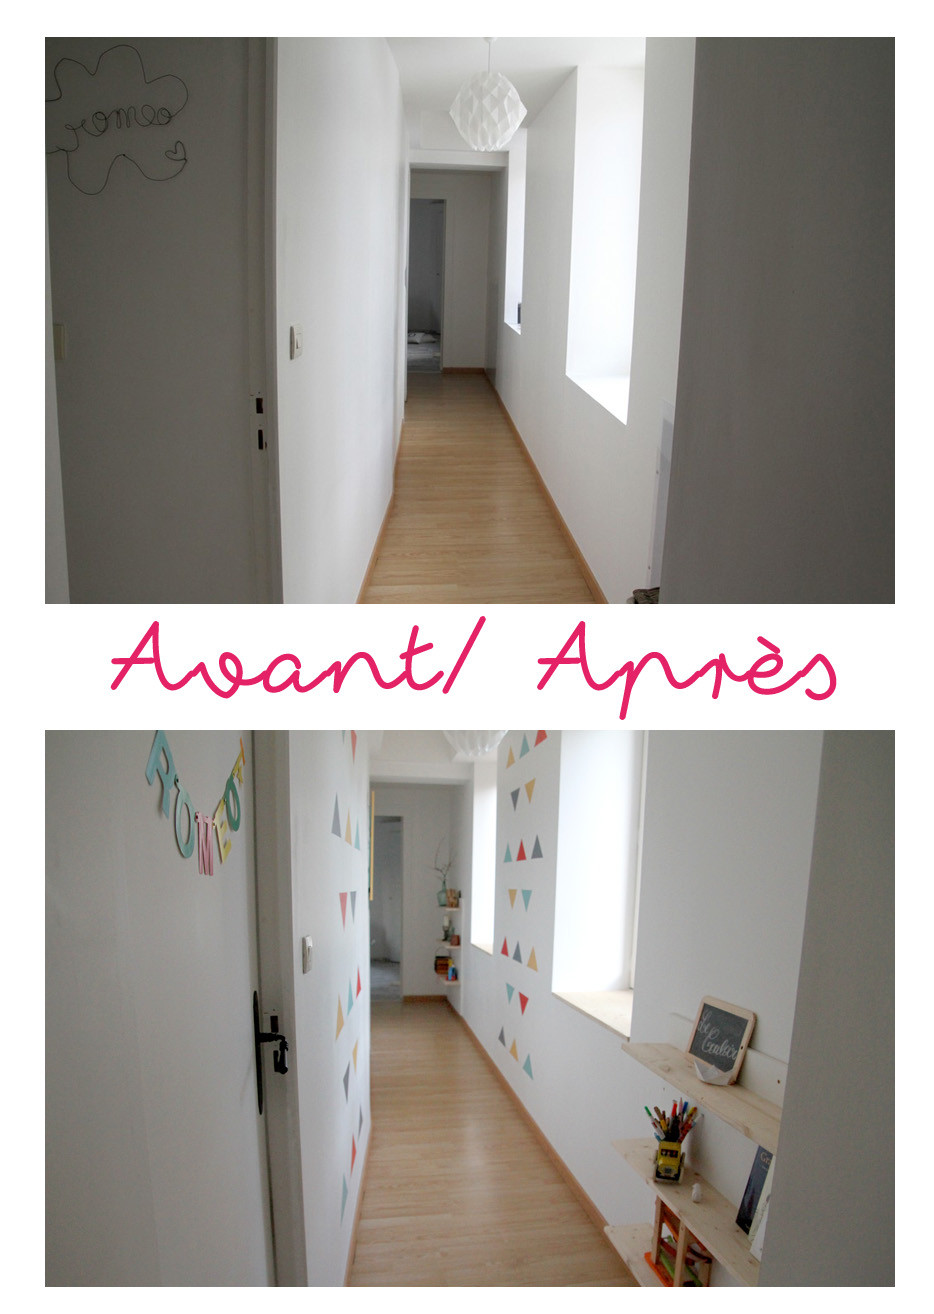 Le couloir avant apr s for Solution pour chambre sans fenetre